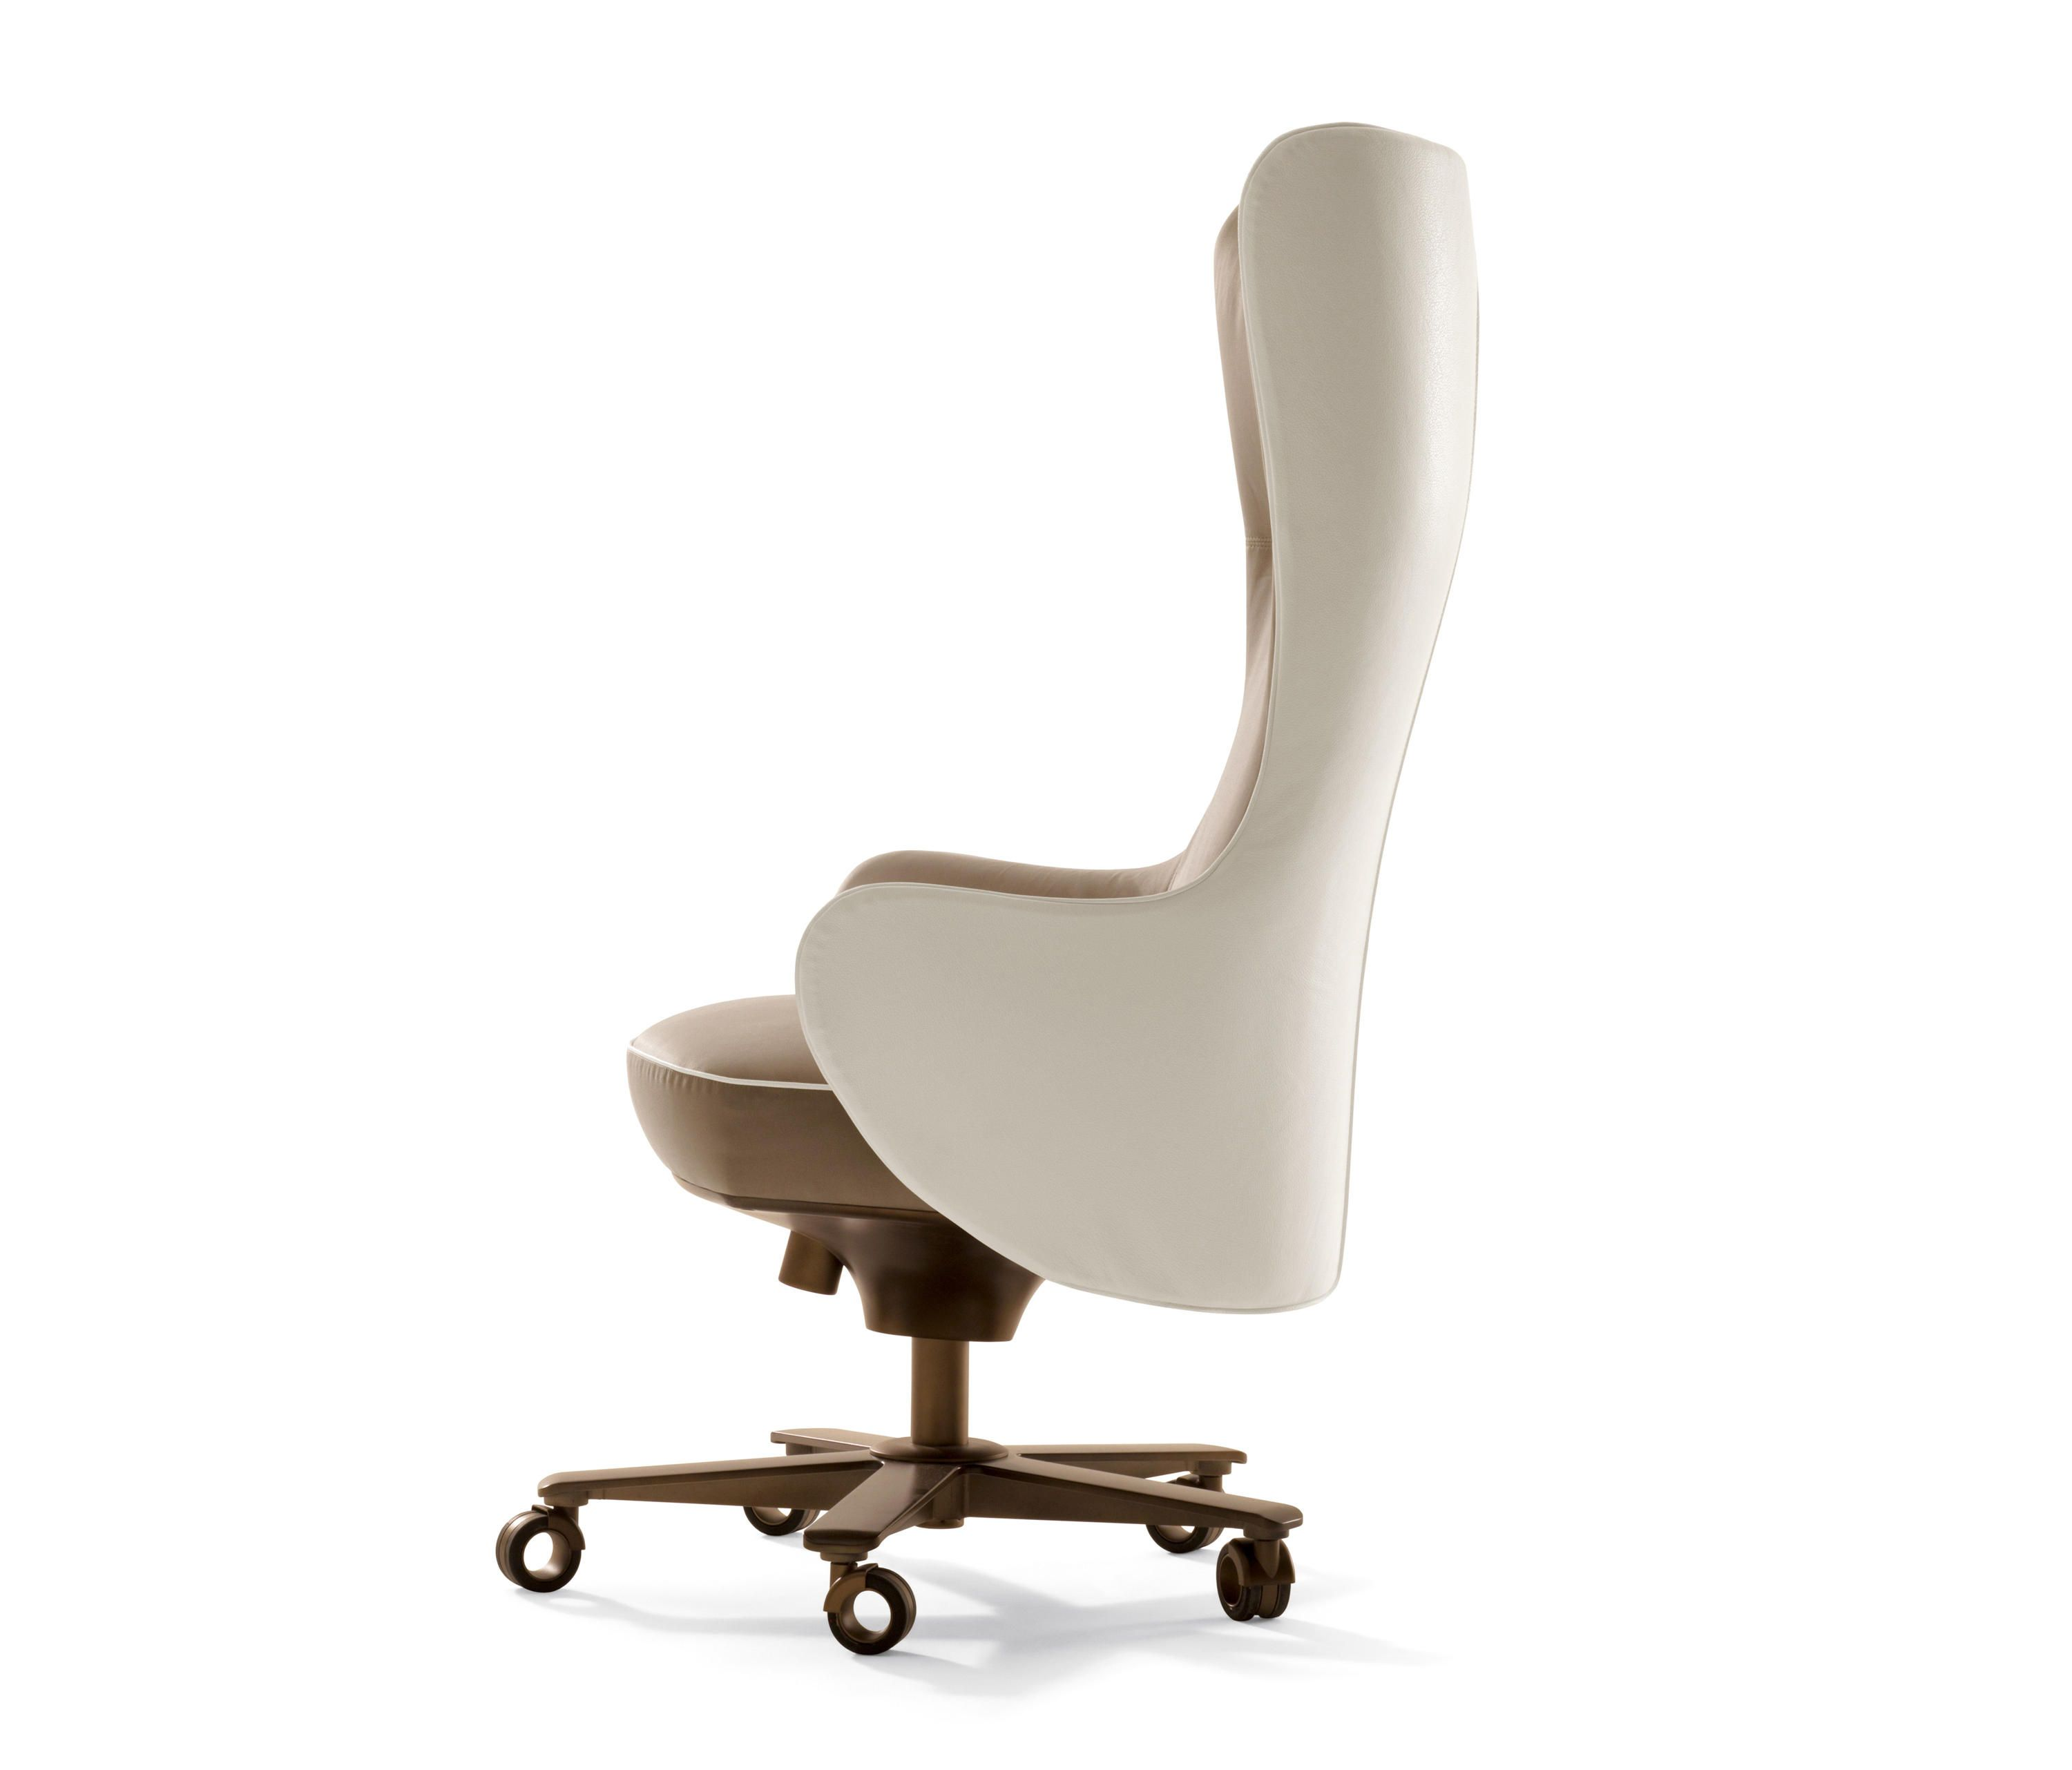 Genius Armchair by Executive chairs Luxury